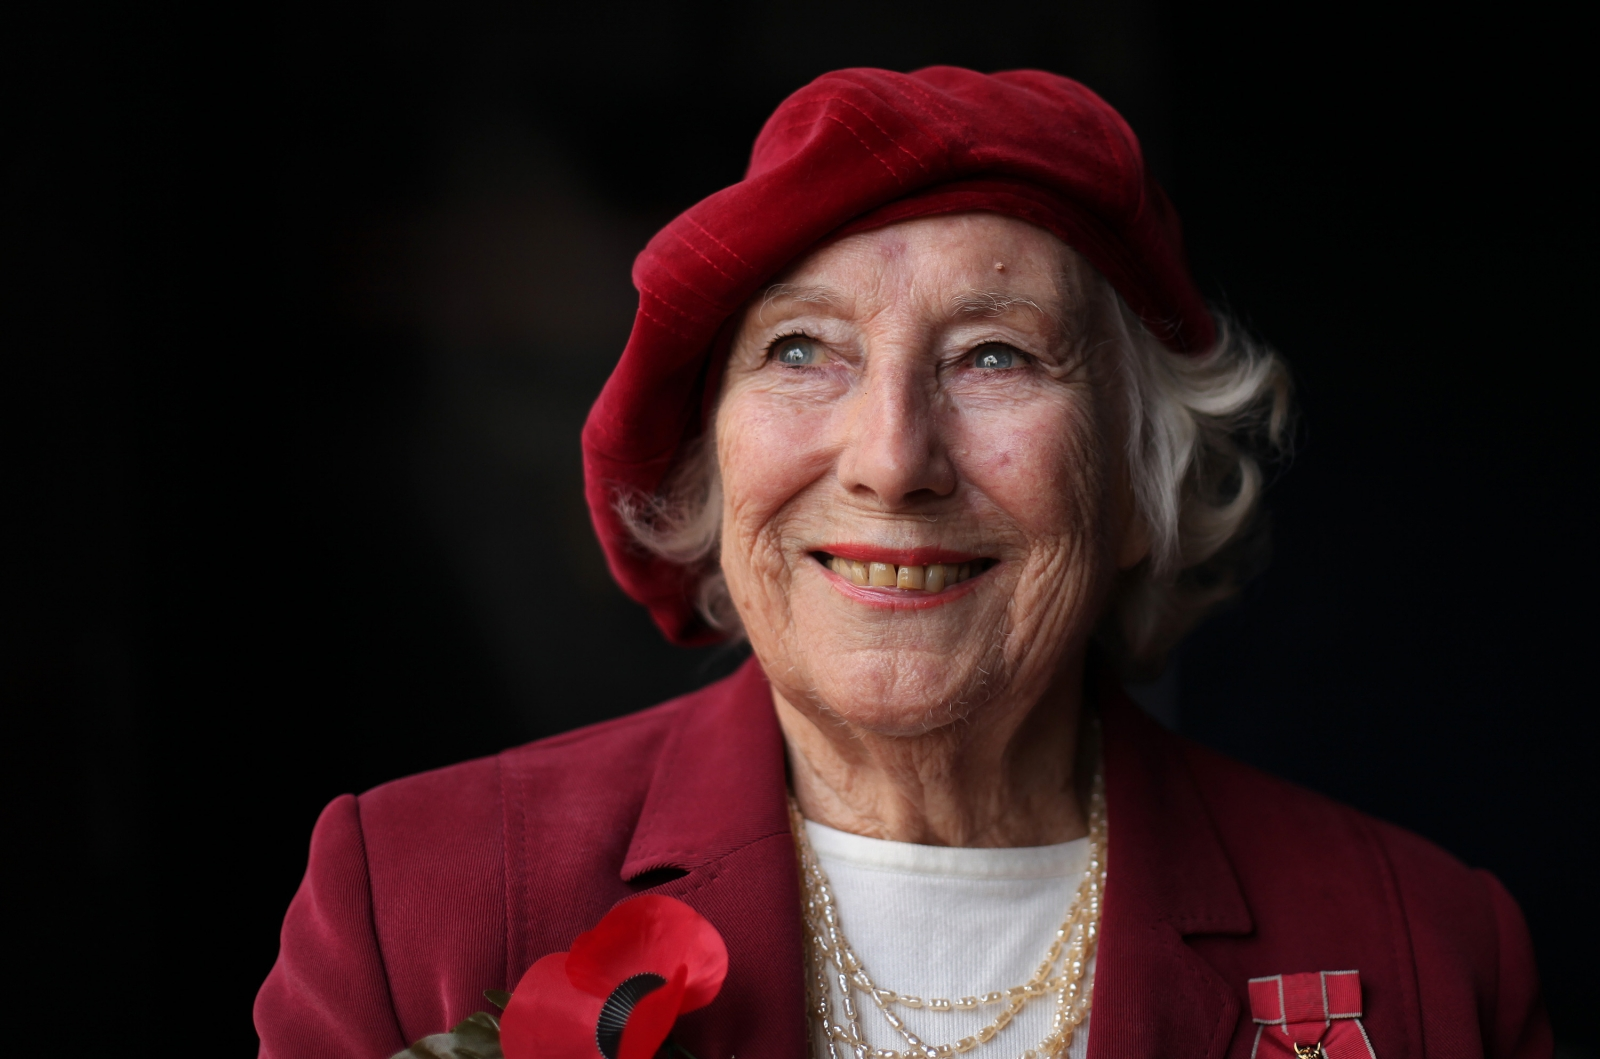 Forces sweetheart Dame Vera Lynn